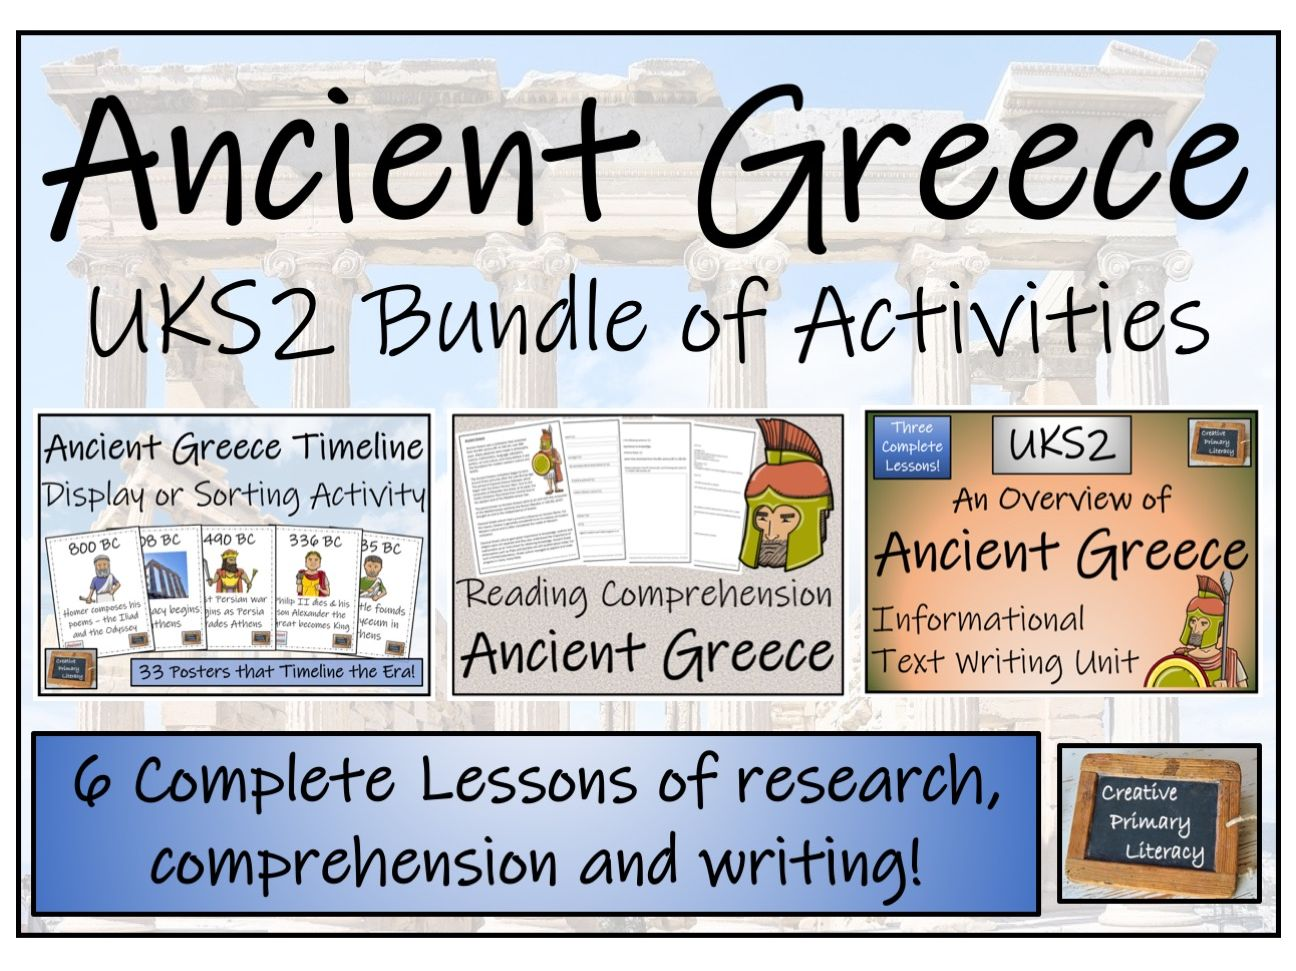 UKS2 Ancient Greece - Display, Research, Reading Comprehension & Writing Bundle